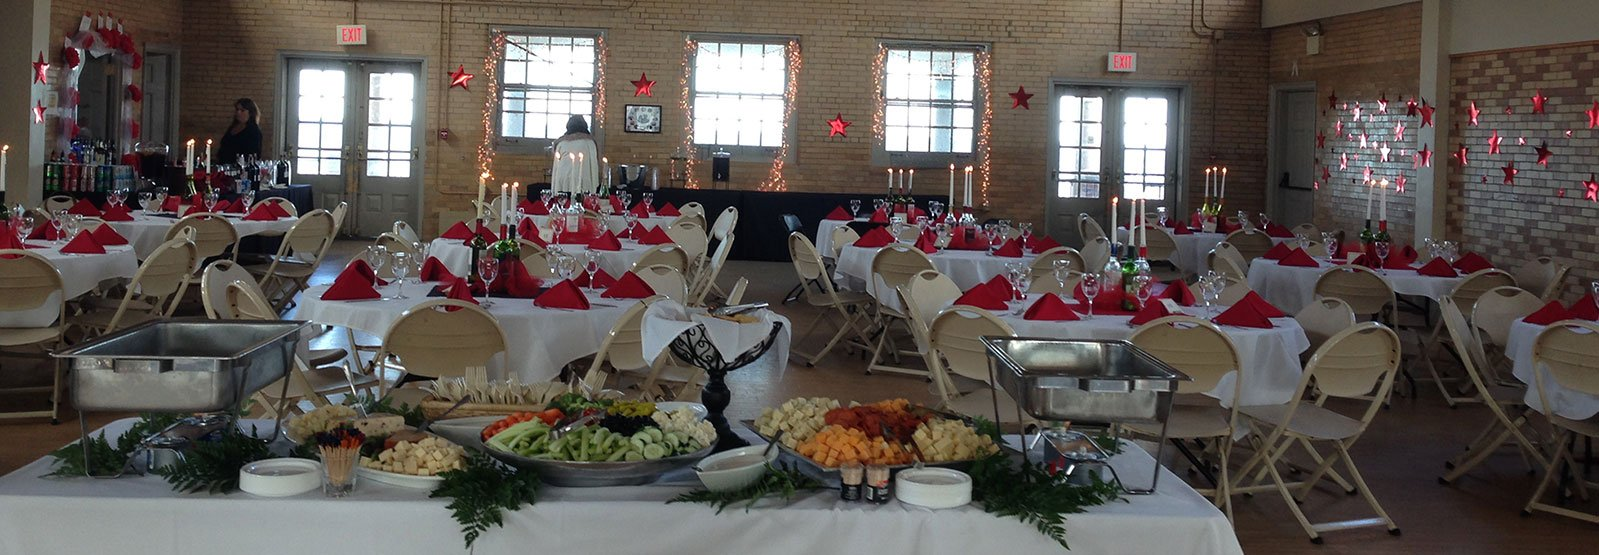 Miraculous Forest Hill Catering Rochester Ny Catering Company Download Free Architecture Designs Terstmadebymaigaardcom